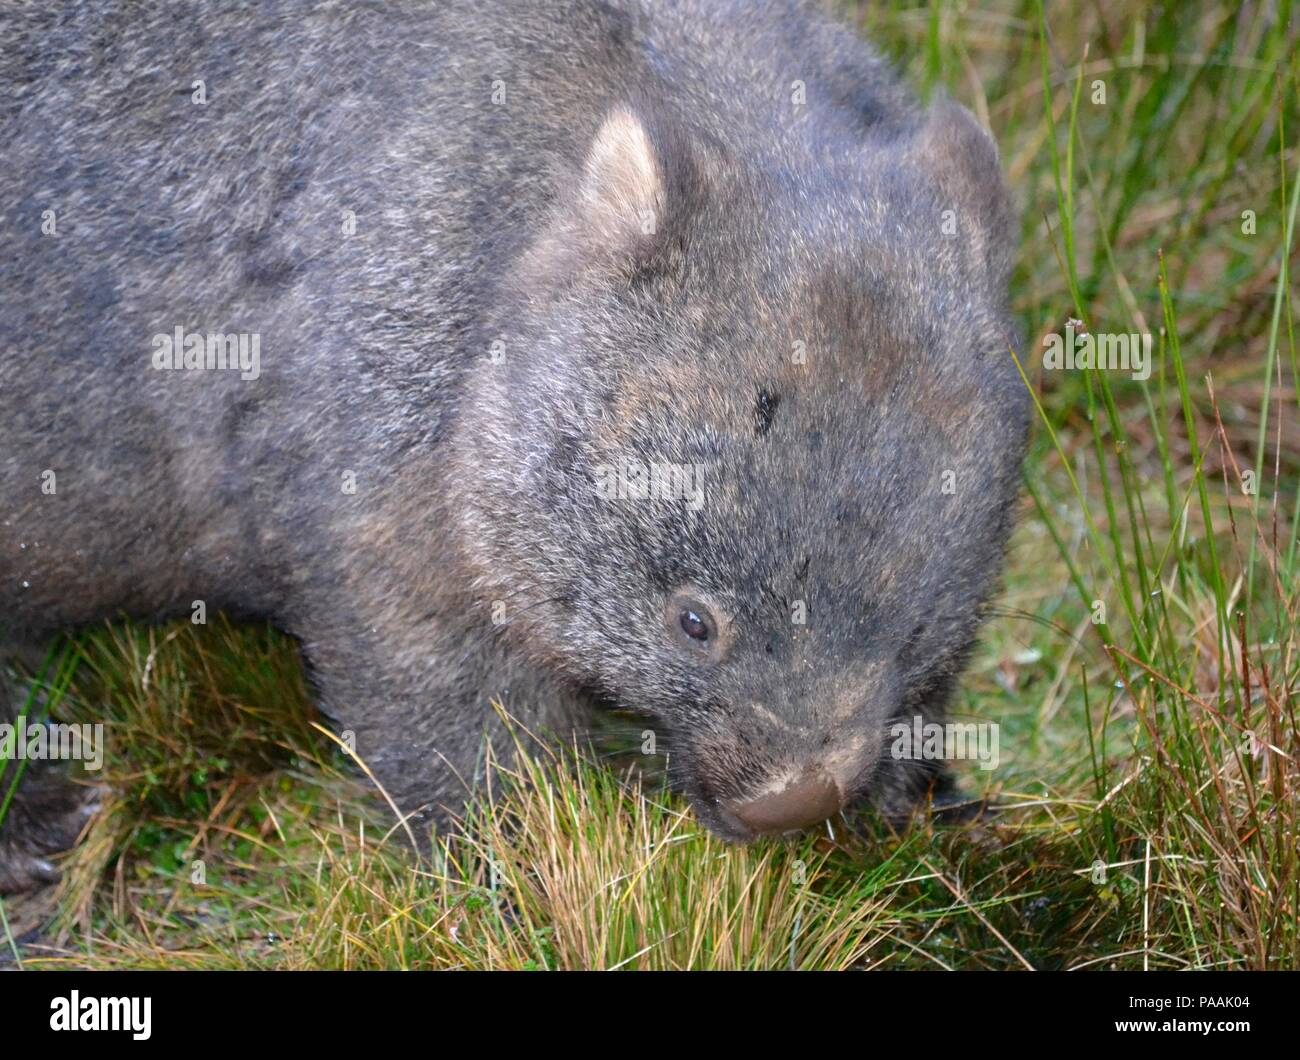 Hairy nose wombat eating grass at Cradle Mountain National Park in Tasmania - Stock Image